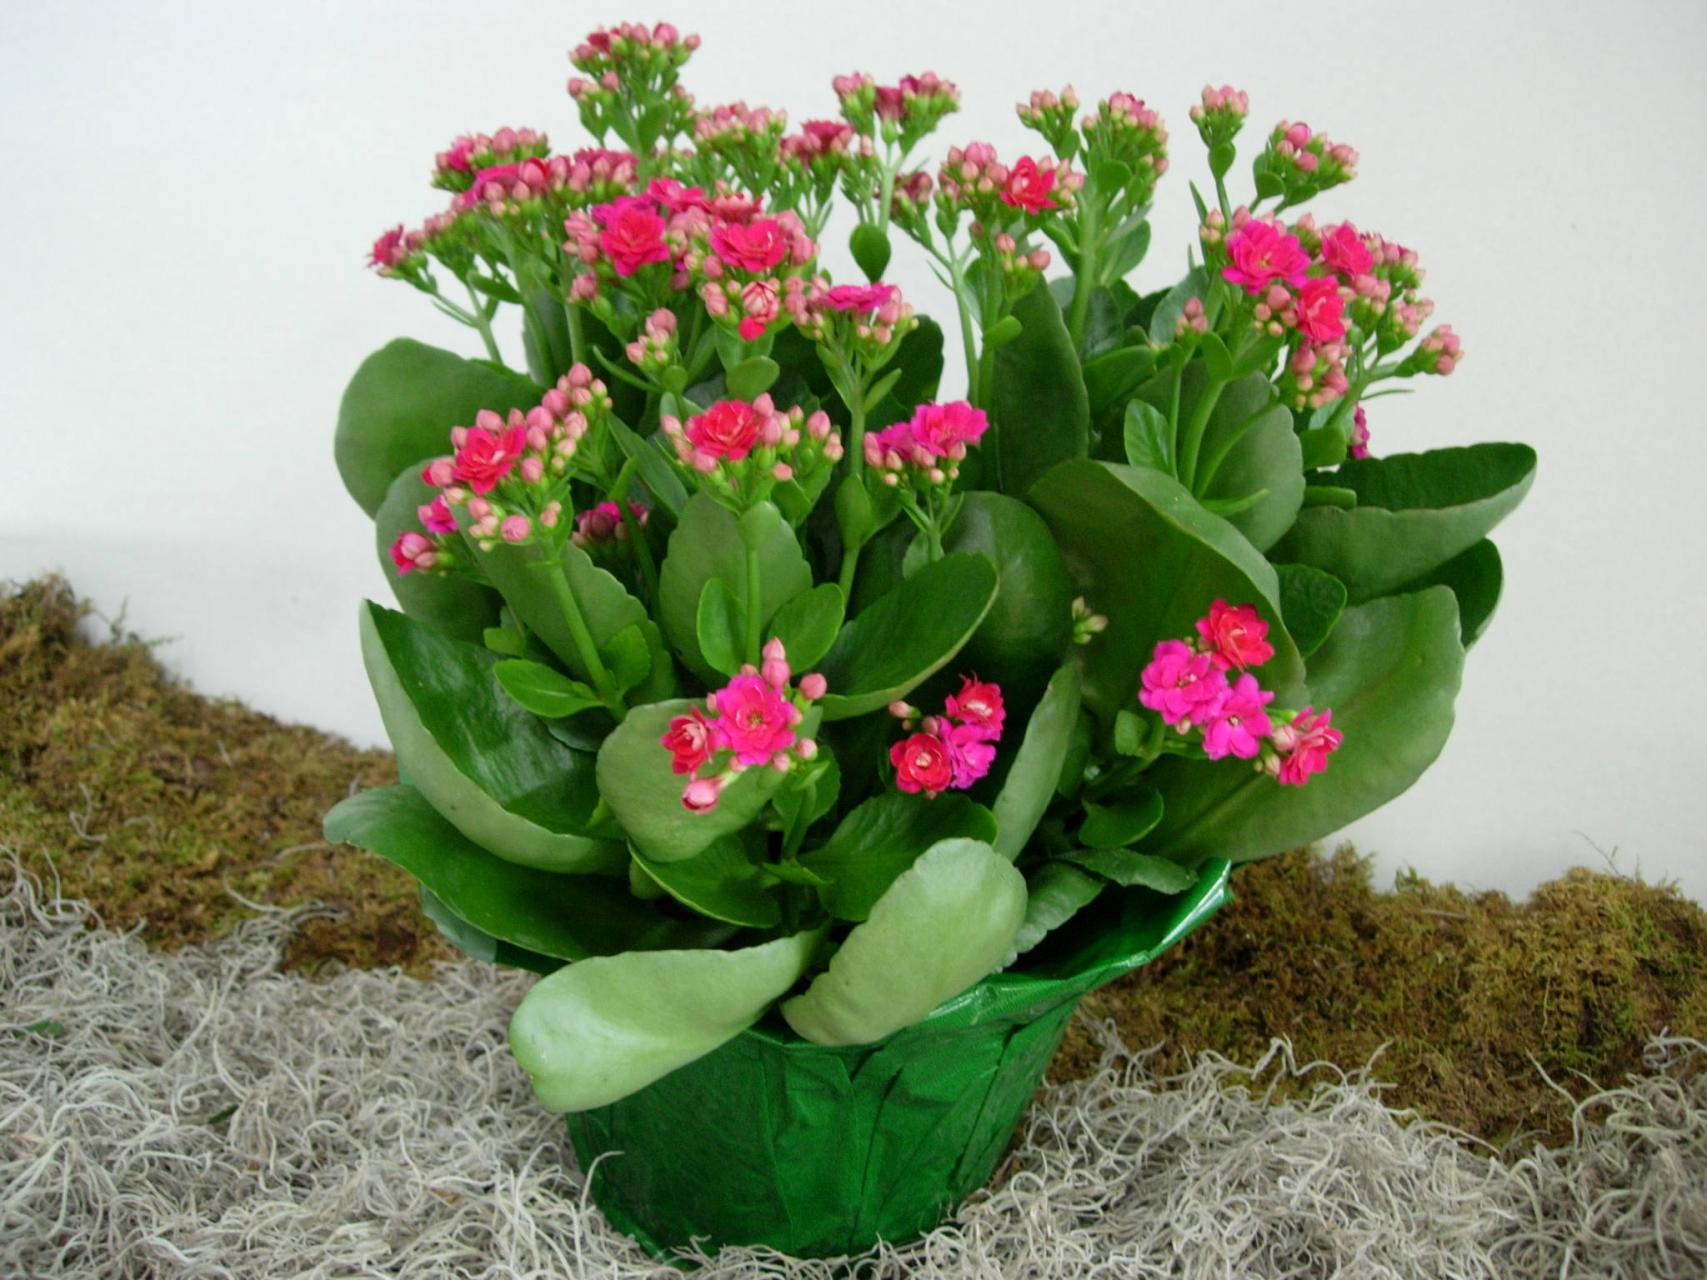 Kalanchoe Care – Tips On How To Grow Kalanchoe Plants - Dummer. ゛ on peace lily plant care indoors, lavender plant care indoors, gardenia plant care indoors, growing plants indoors, croton plant care indoors, rosemary plant care indoors, hyacinth plant care indoors, cyclamen plant care indoors, celosia plant care indoors, aloe vera plant care indoors, hydrangea plant care indoors, azalea plant care indoors, fiddle leaf fig care indoors, jasmine plant care indoors, calla lily plant care indoors, calathea plant care indoors, ivy plant care indoors, cool plants to grow indoors, begonia plant care indoors, yucca plant care indoors,